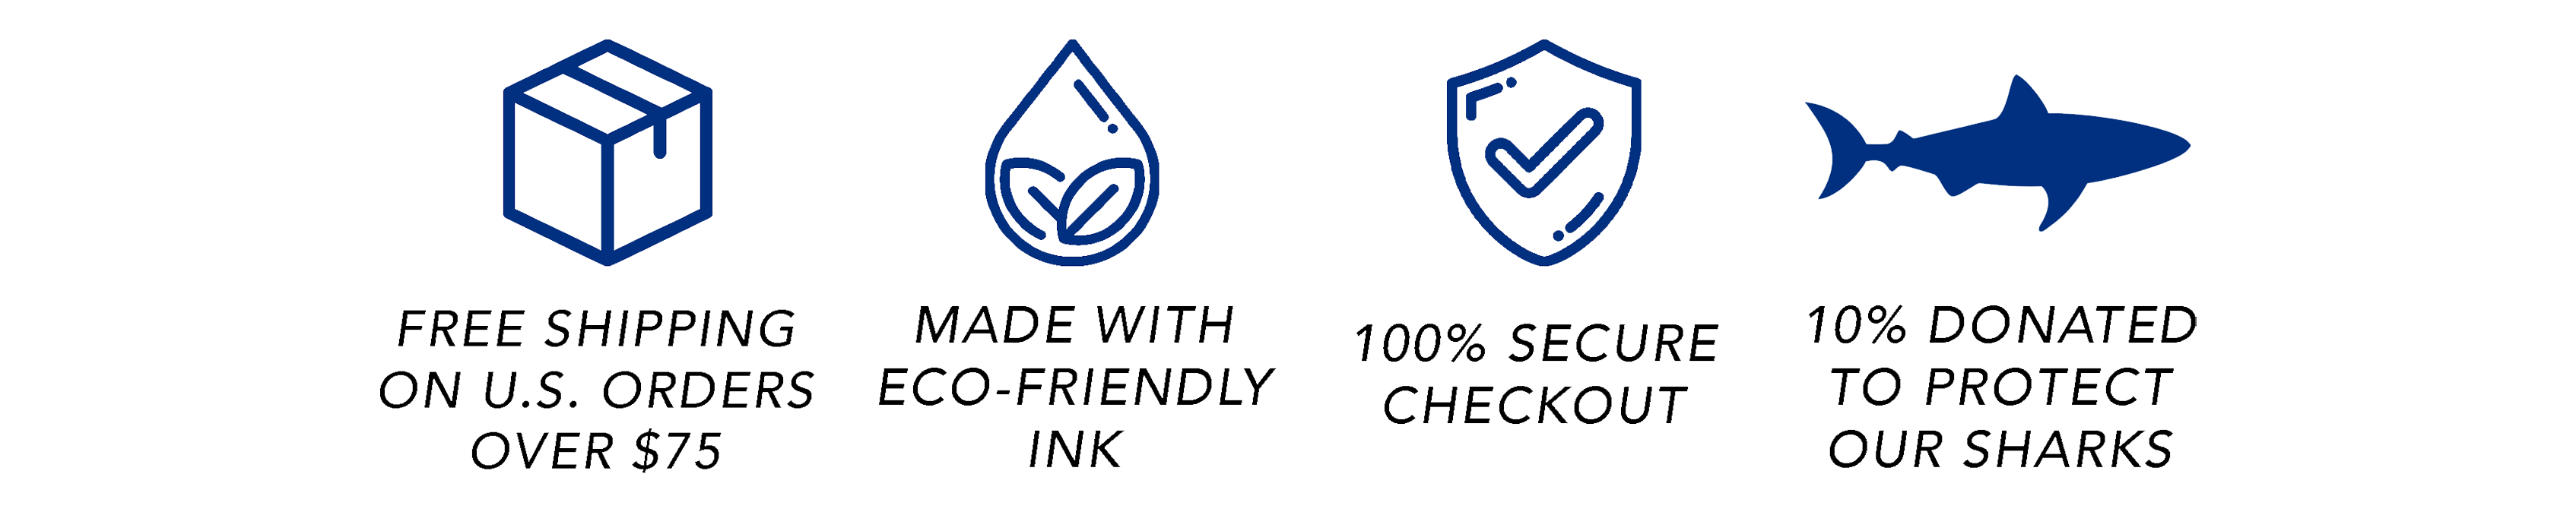 Free shipping on U.S. orders over $75. Made with eco-friendly ink. 100% secure checkout. 10% donated to protect our sharks.- Connected Clothing Company